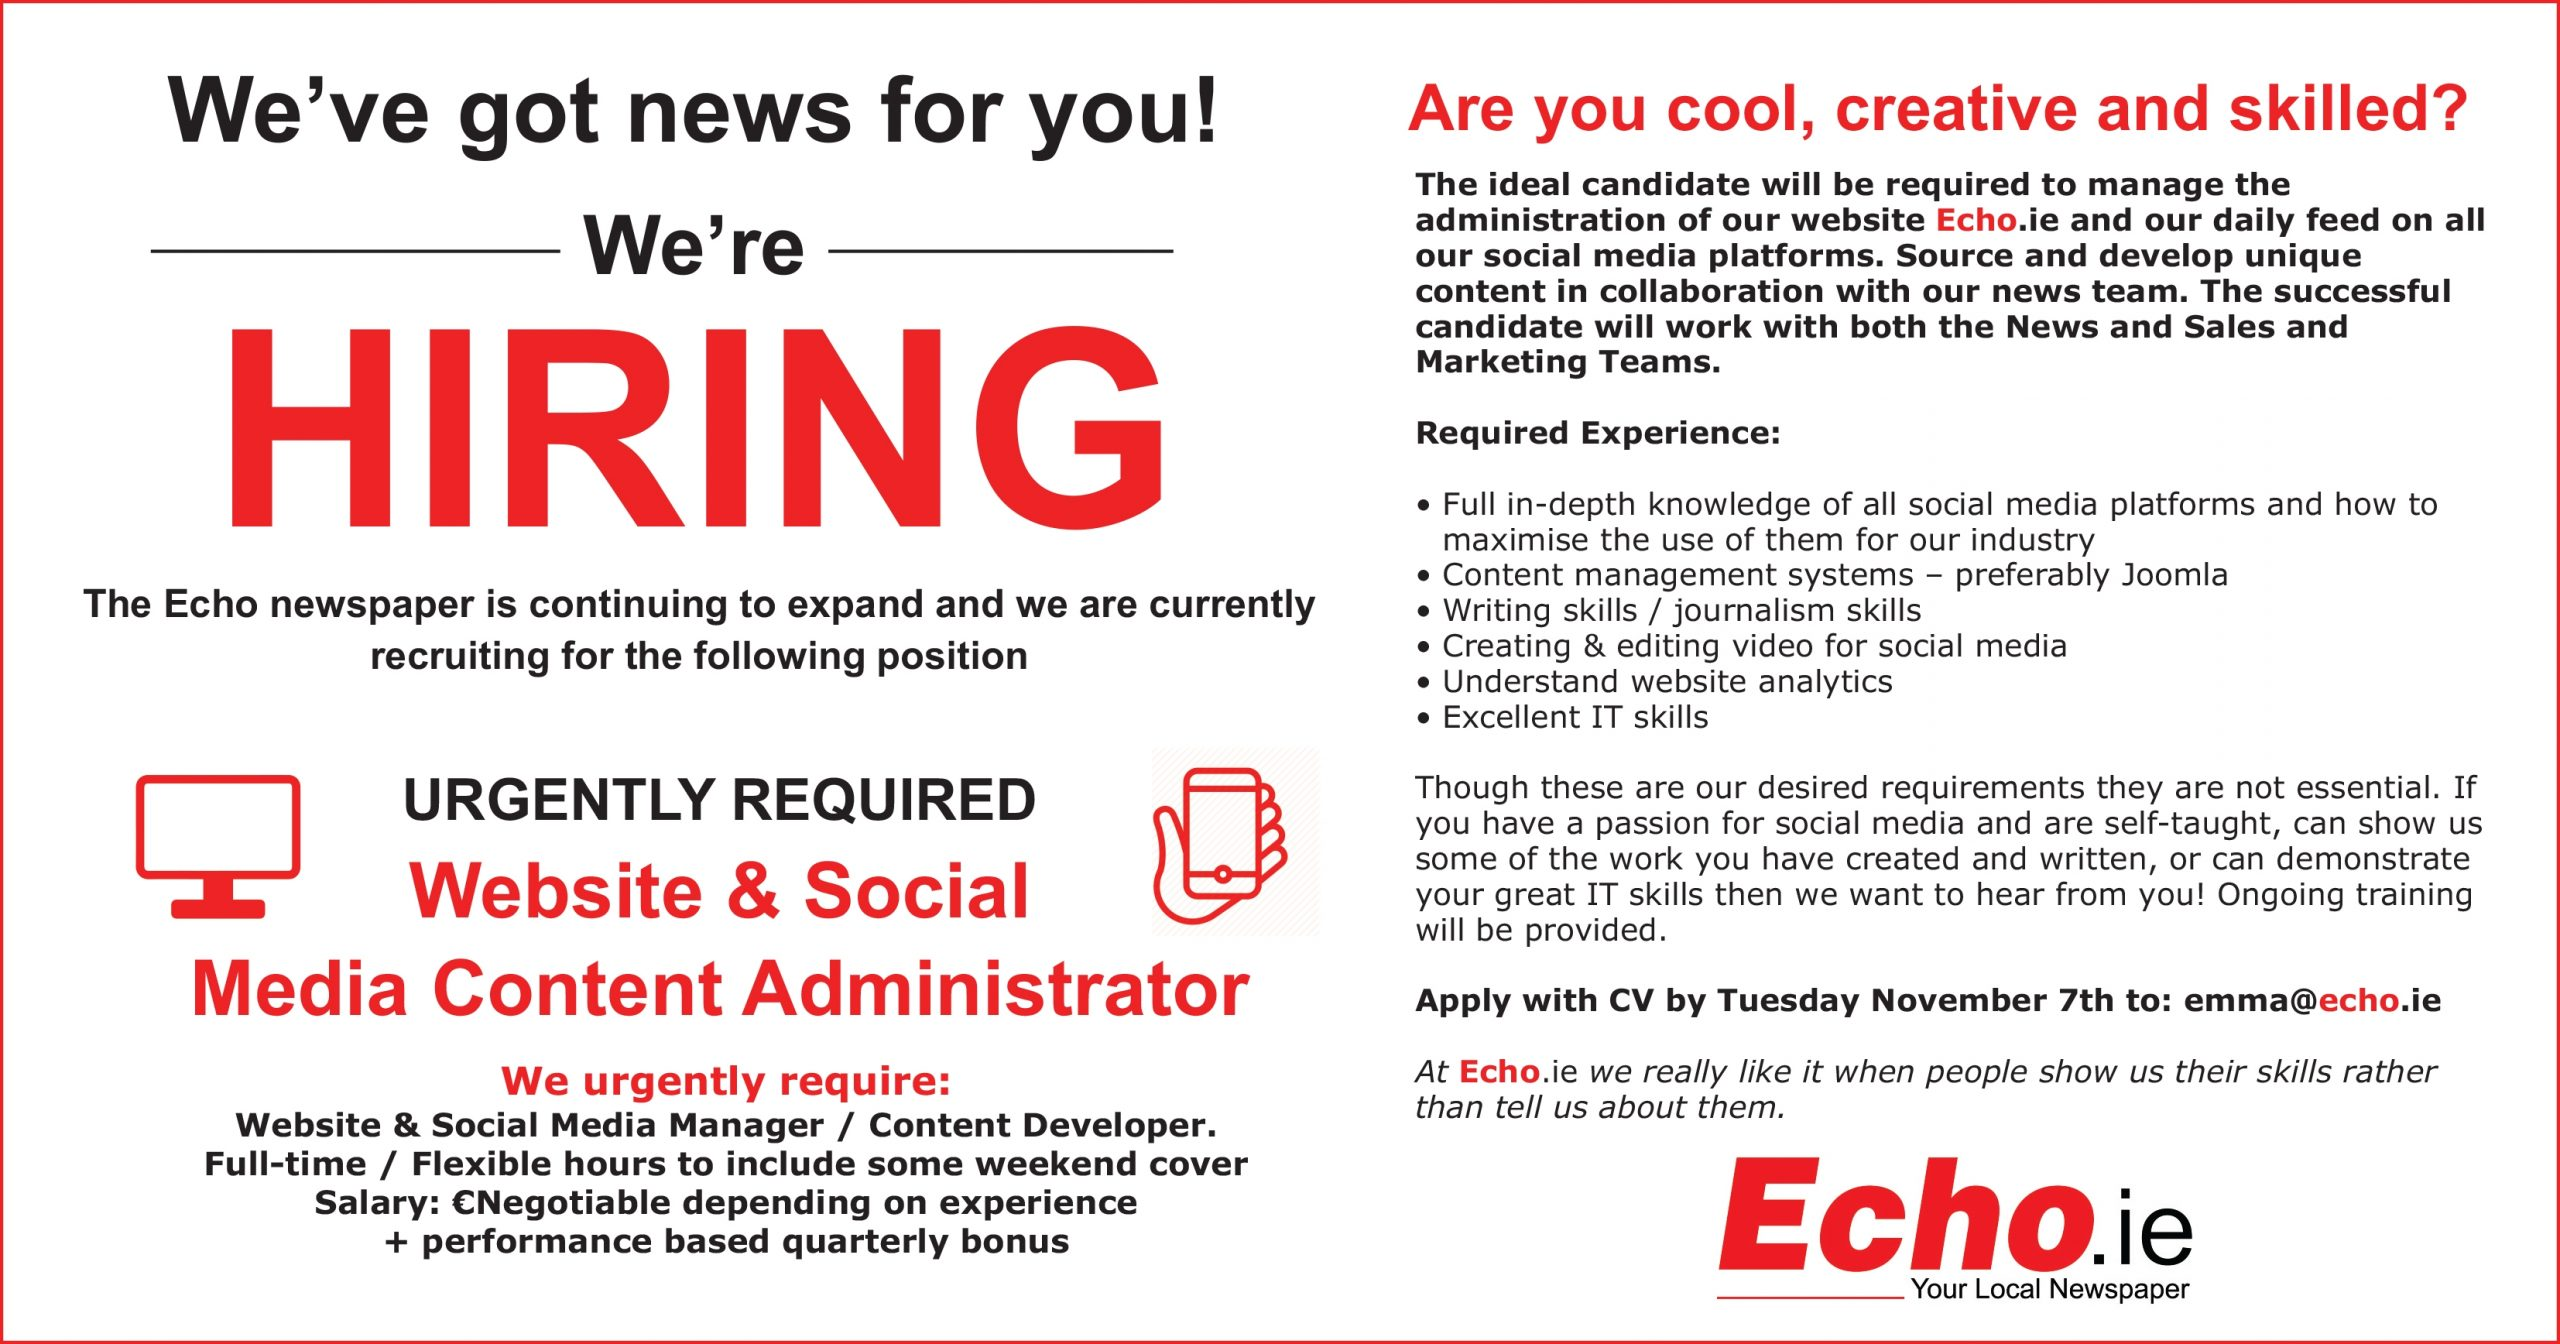 The Echo Newspaper is seeking a creative and skilled web and social media manager